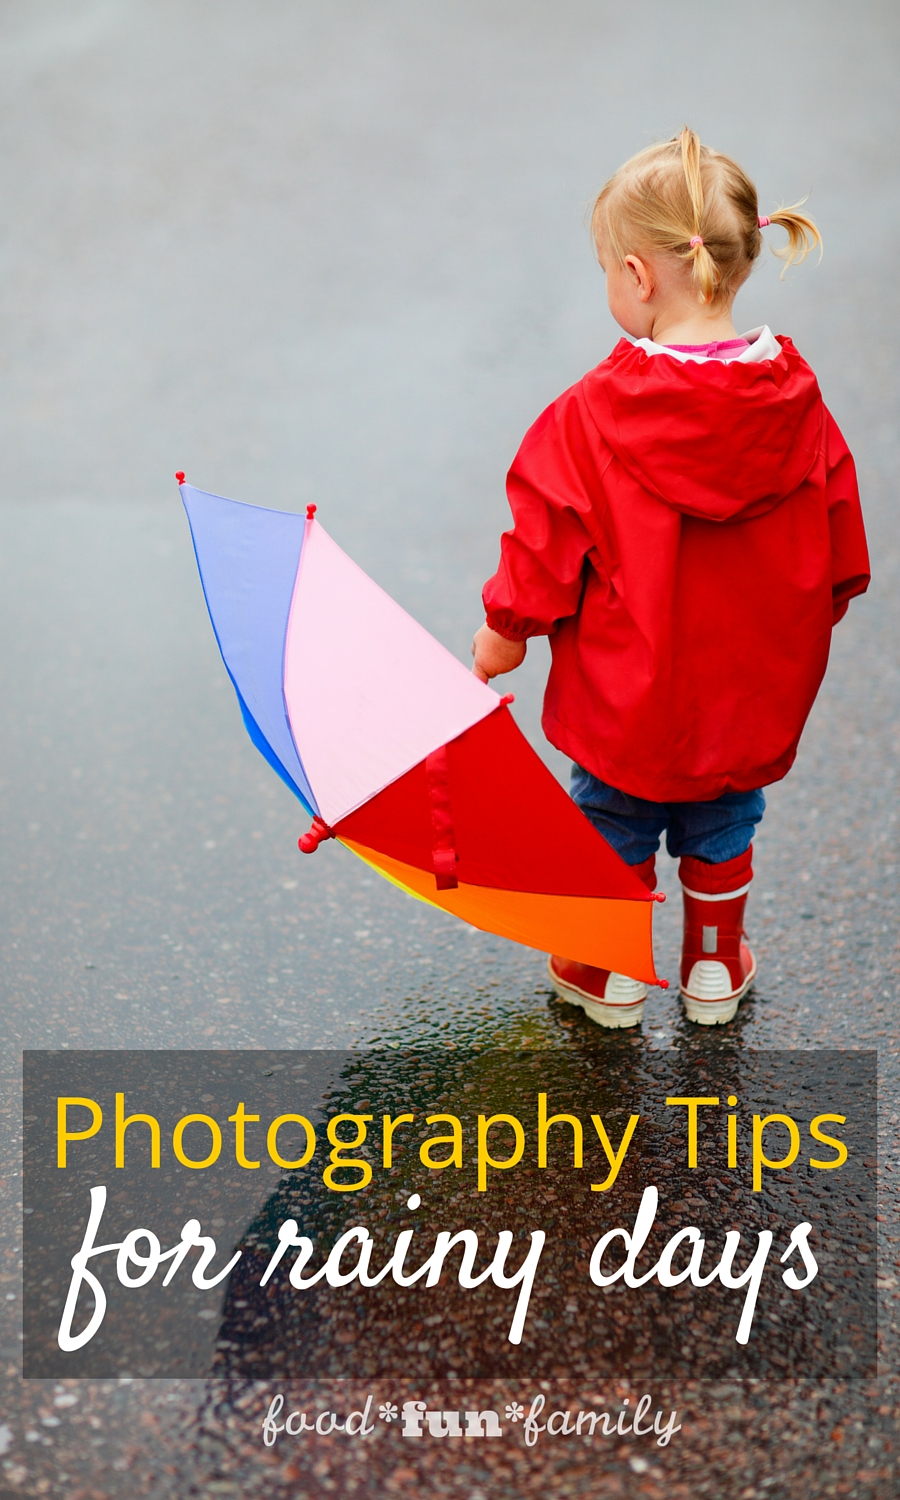 Photography Tips for rainy days - how to capture the best photos with your camera when the weather is wet, cloudy, and rainy.